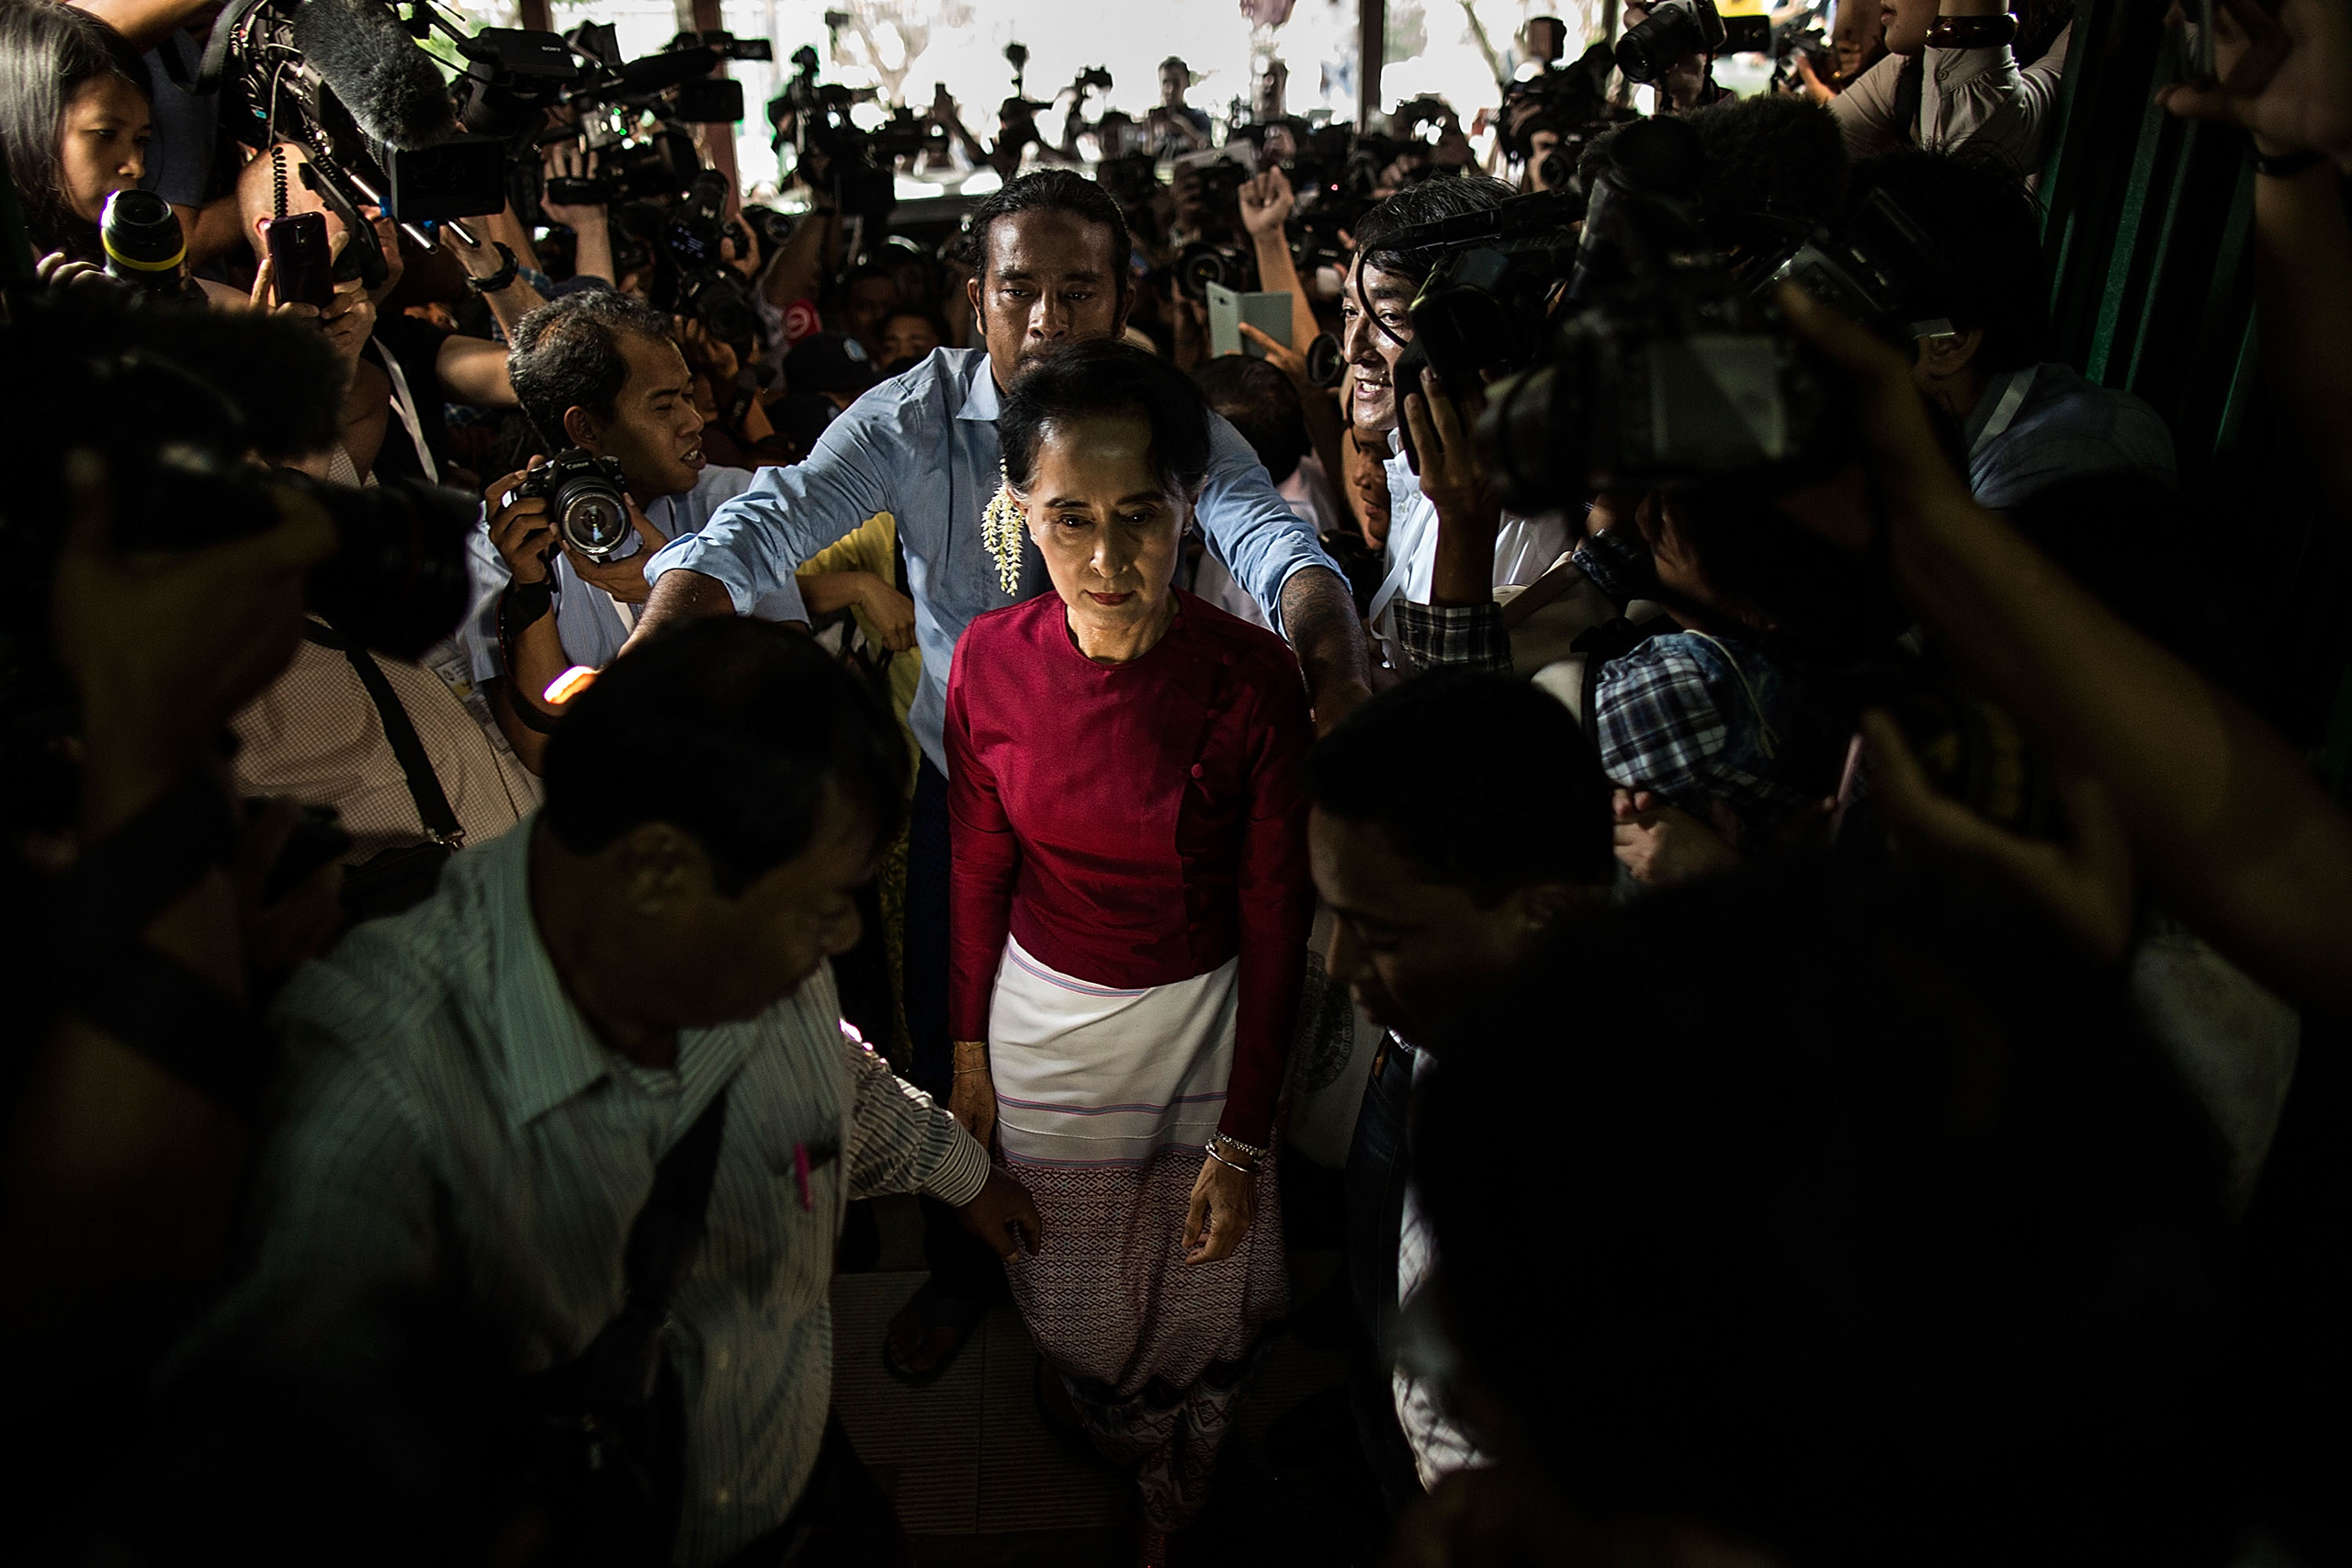 Aung San Suu Kyi arrives at the polling station to cast her vote during Myanmar's first free election in a quarter-century in Yangon, Myanmar, on Nov. 8, 2015